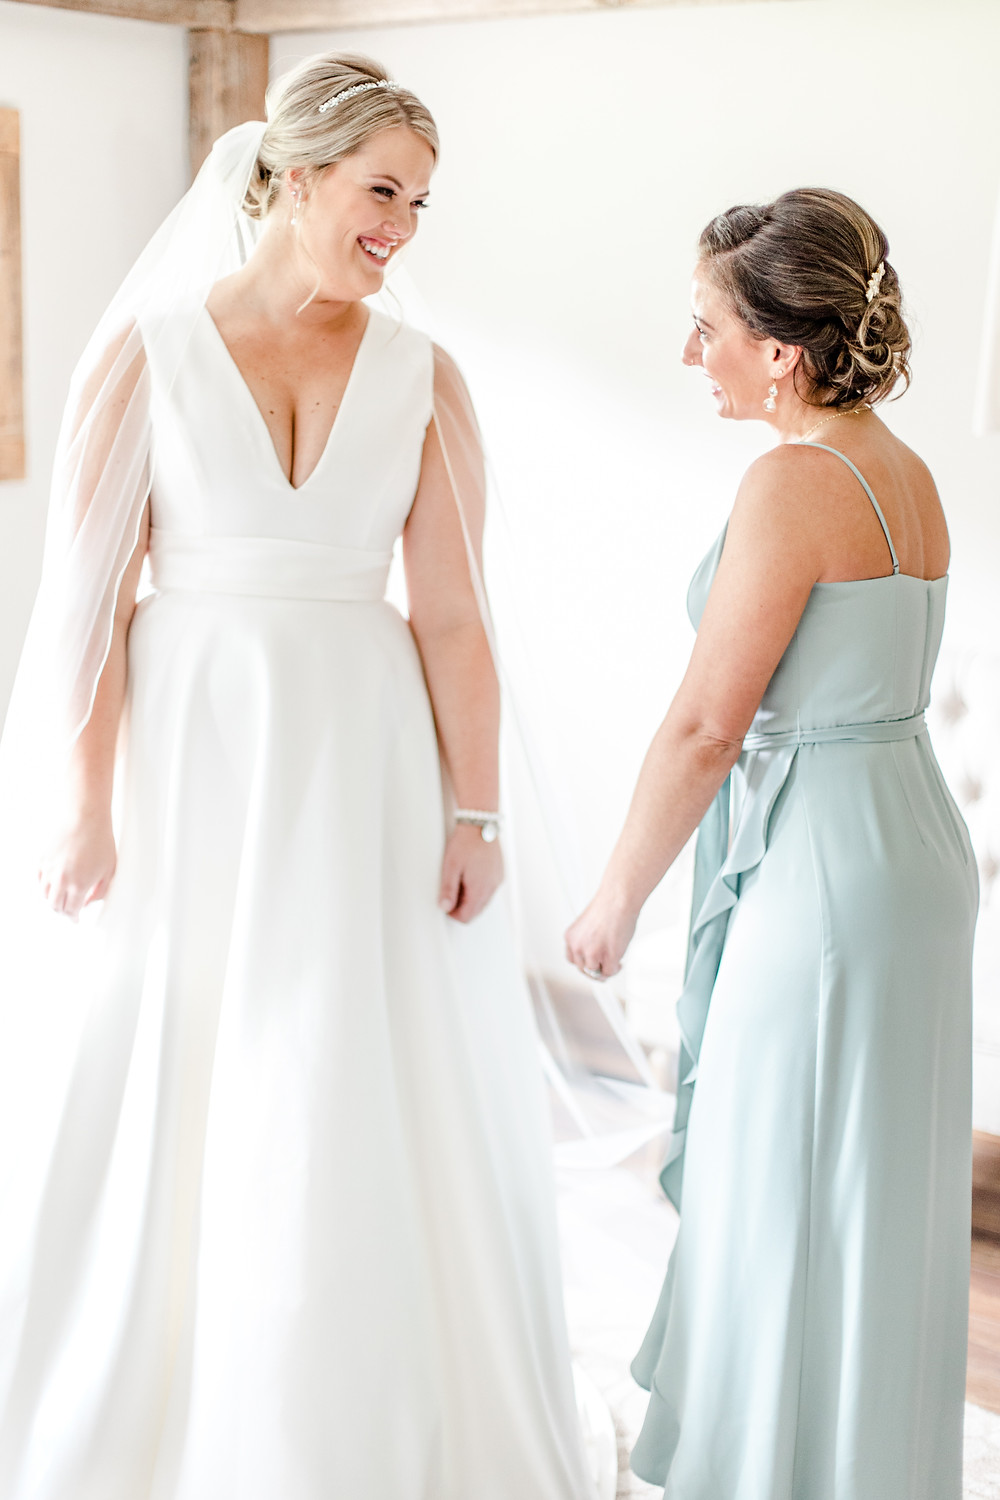 Josh and Andrea wedding photography husband and wife photographer team michigan Black Barn Wedding Venue rives junction spring bride and bridesmaid getting ready